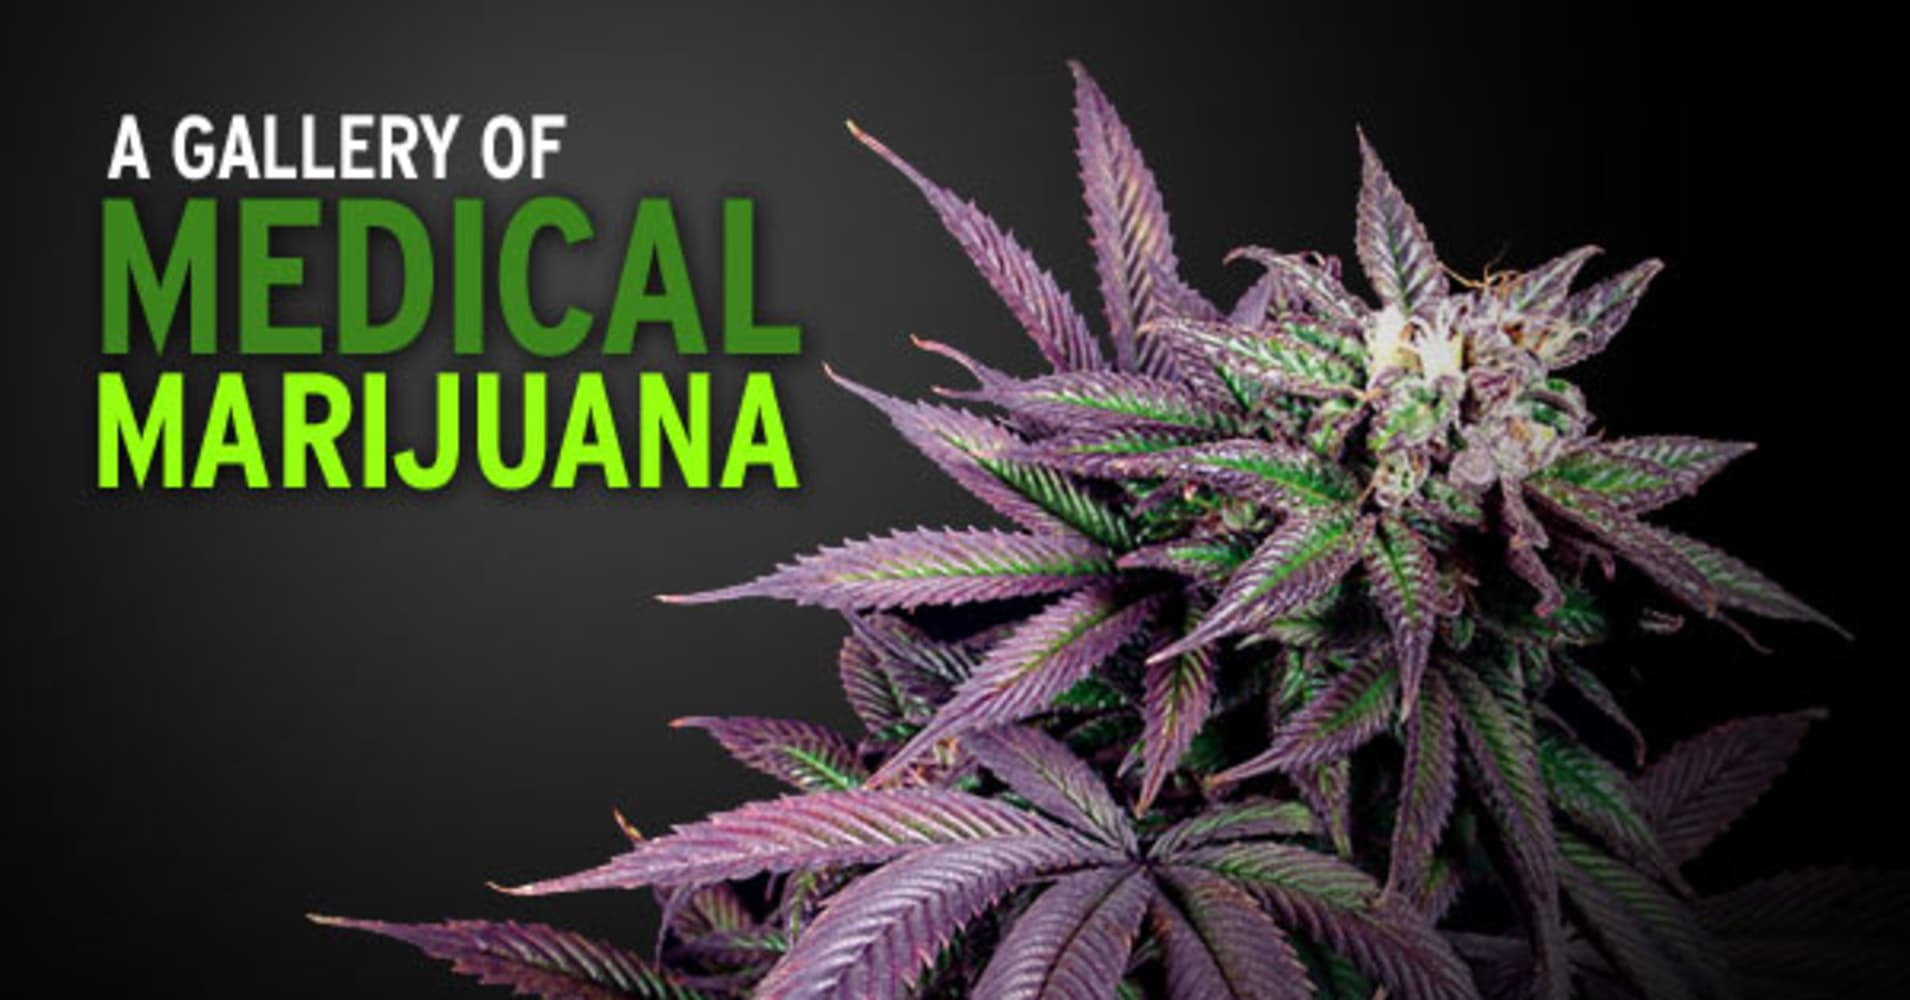 editorial marijuana Washington initiative 502 (i-502) on marijuana reform was an initiative to the washington state legislature, which appeared on the november 2012 general ballot, passing by a margin of approximately 56 to 44 percent.